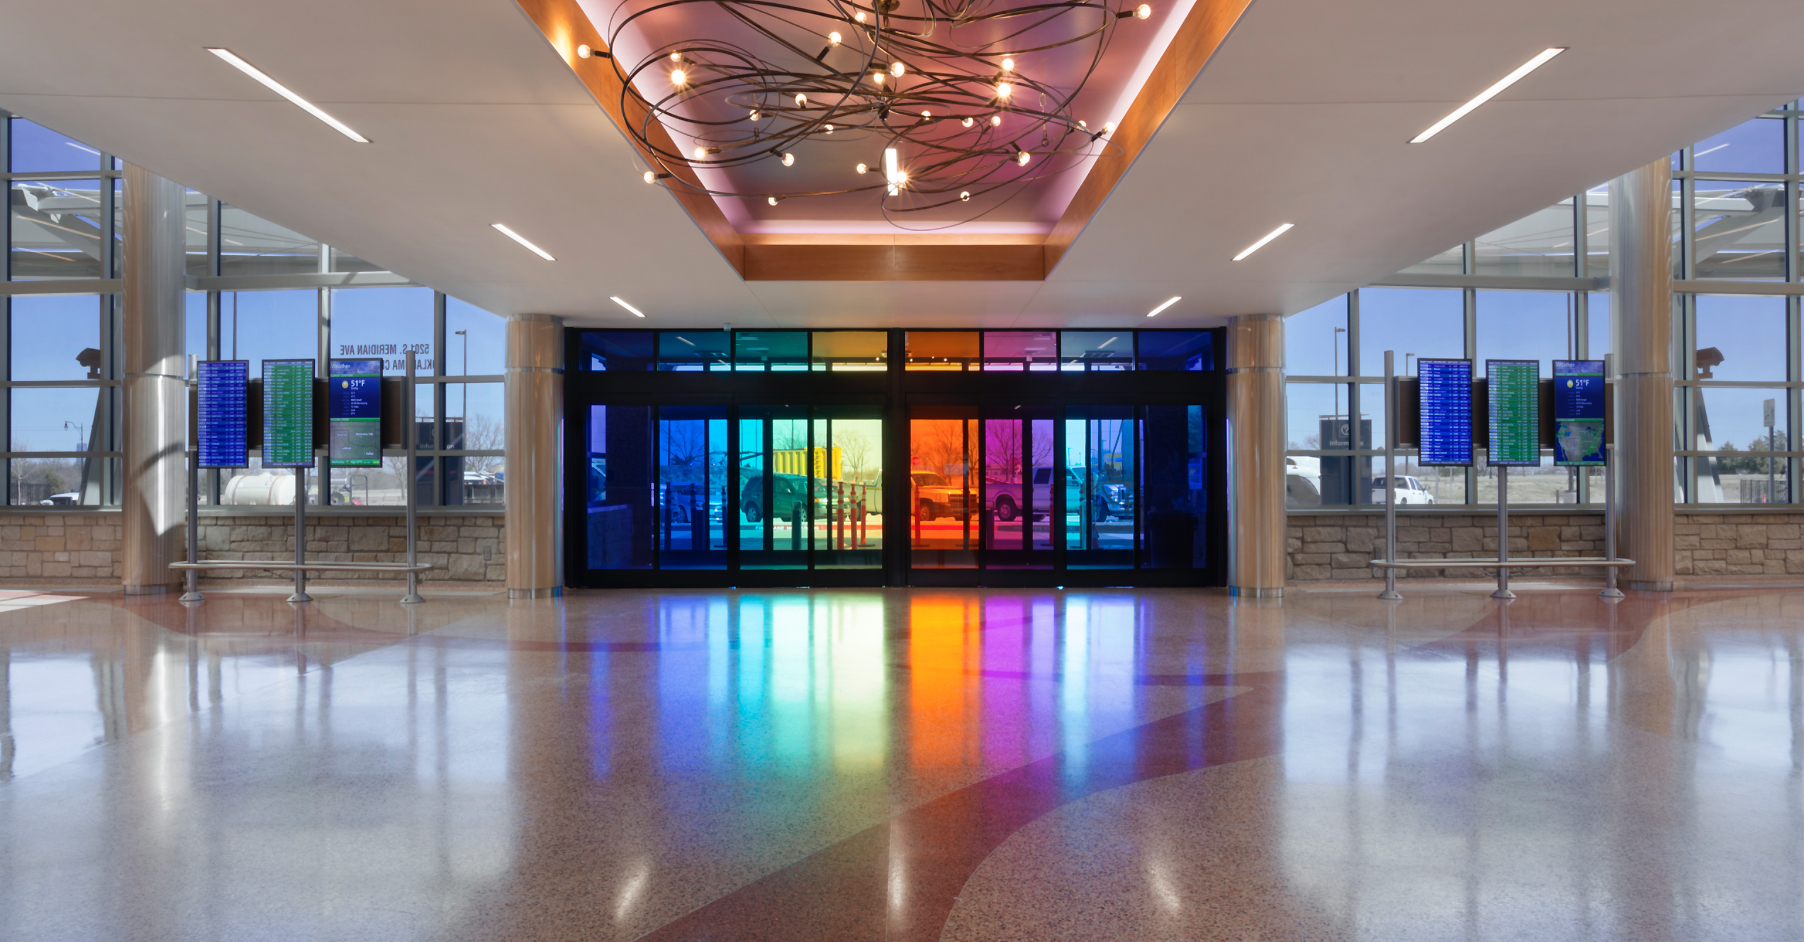 Will Rogers airport rental car facility entrance, Oklahoma City, commissioned by: Guernsey